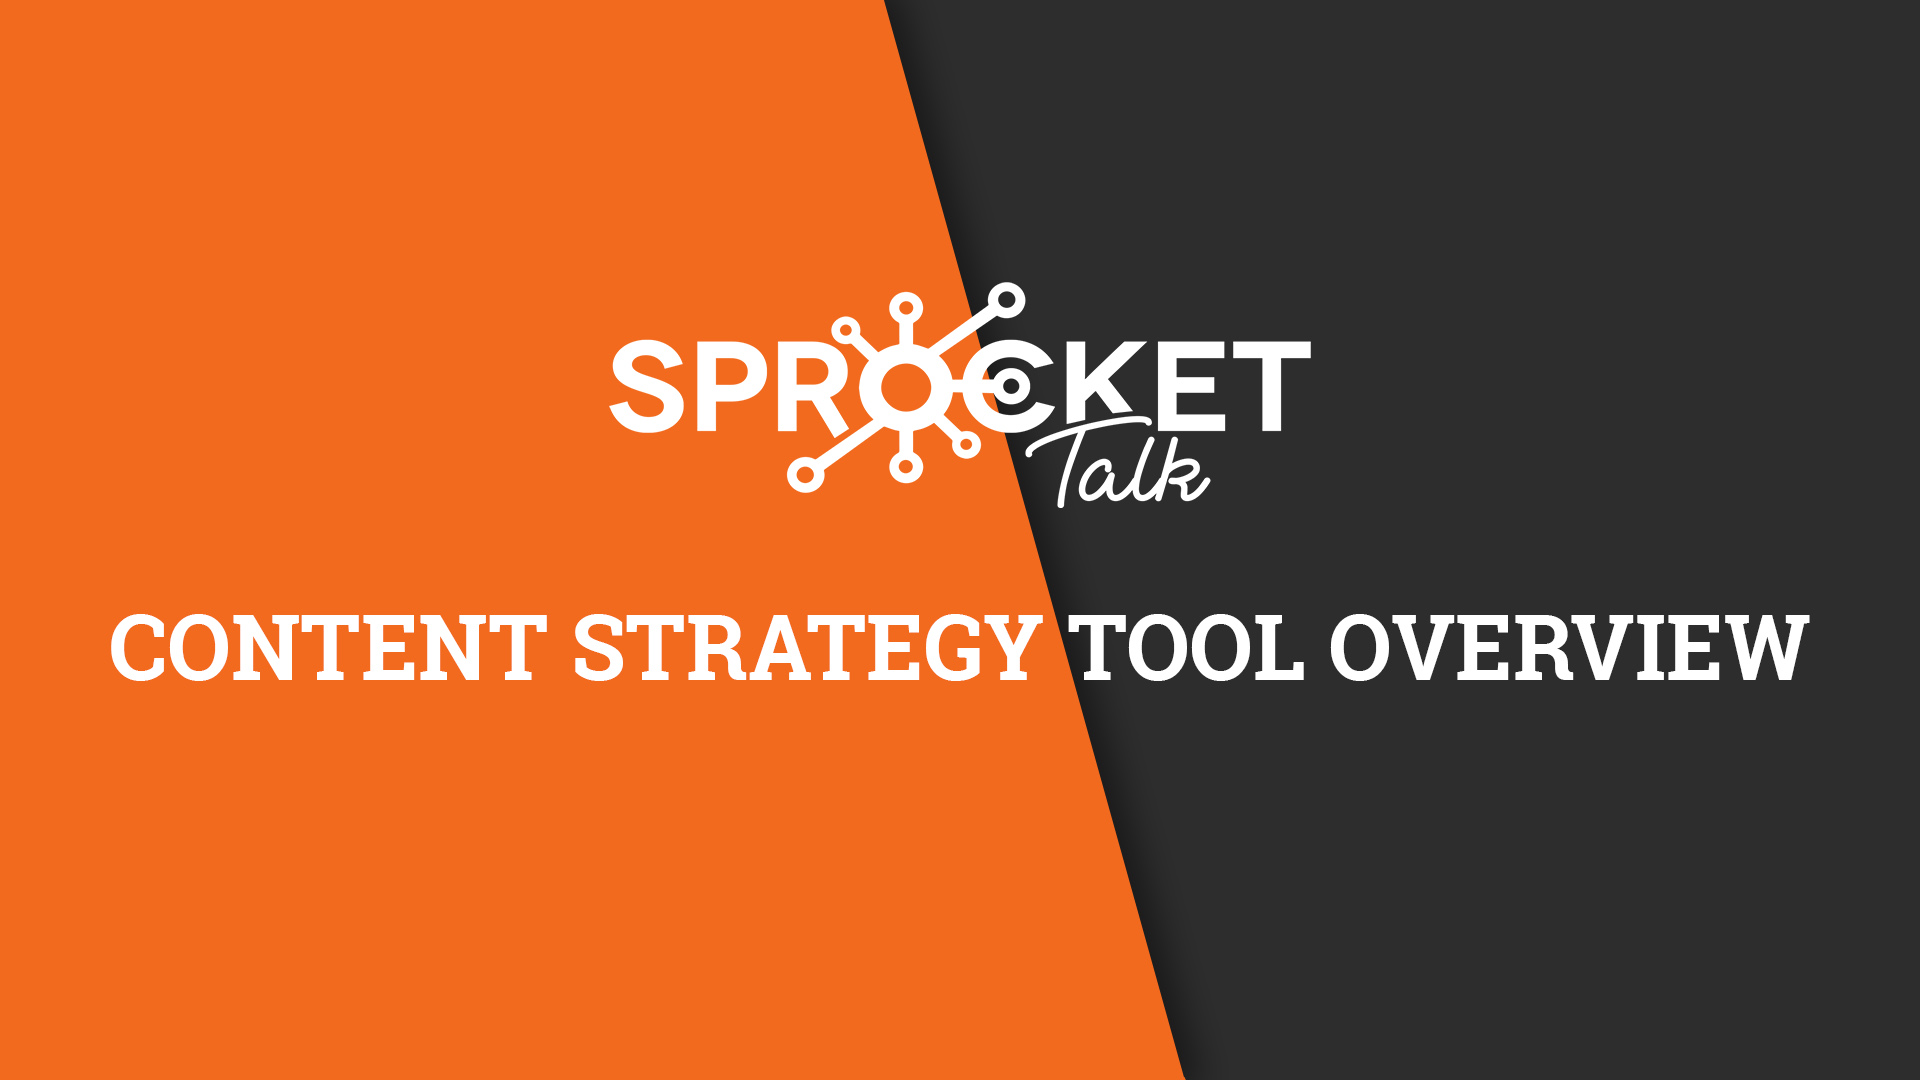 Content Strategy Tool Overview